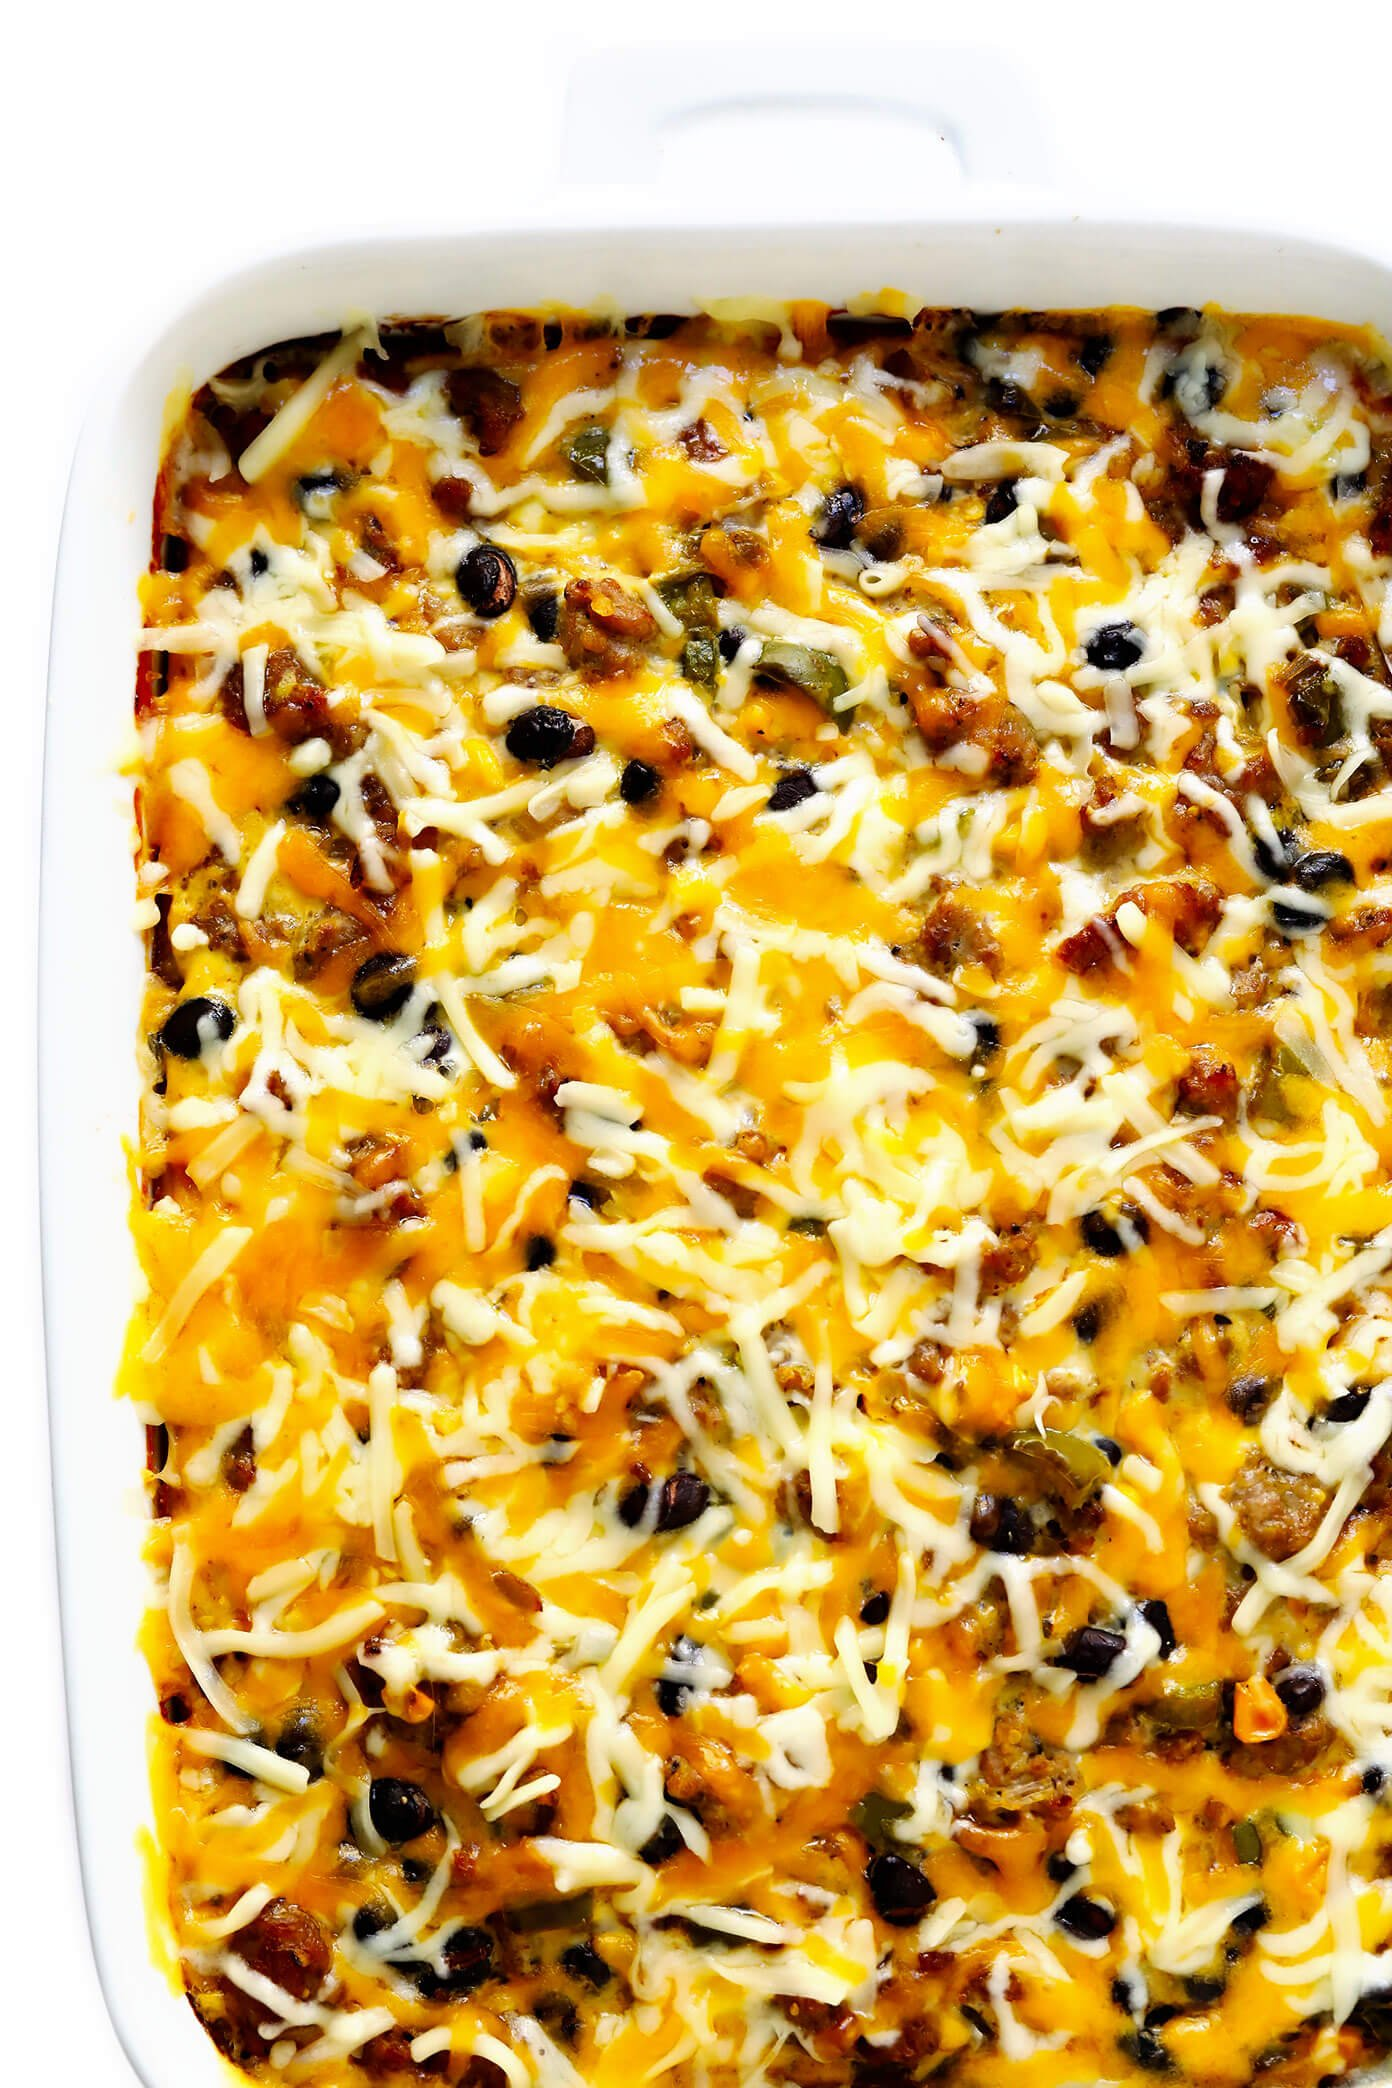 How To Make A Breakfast Casserole